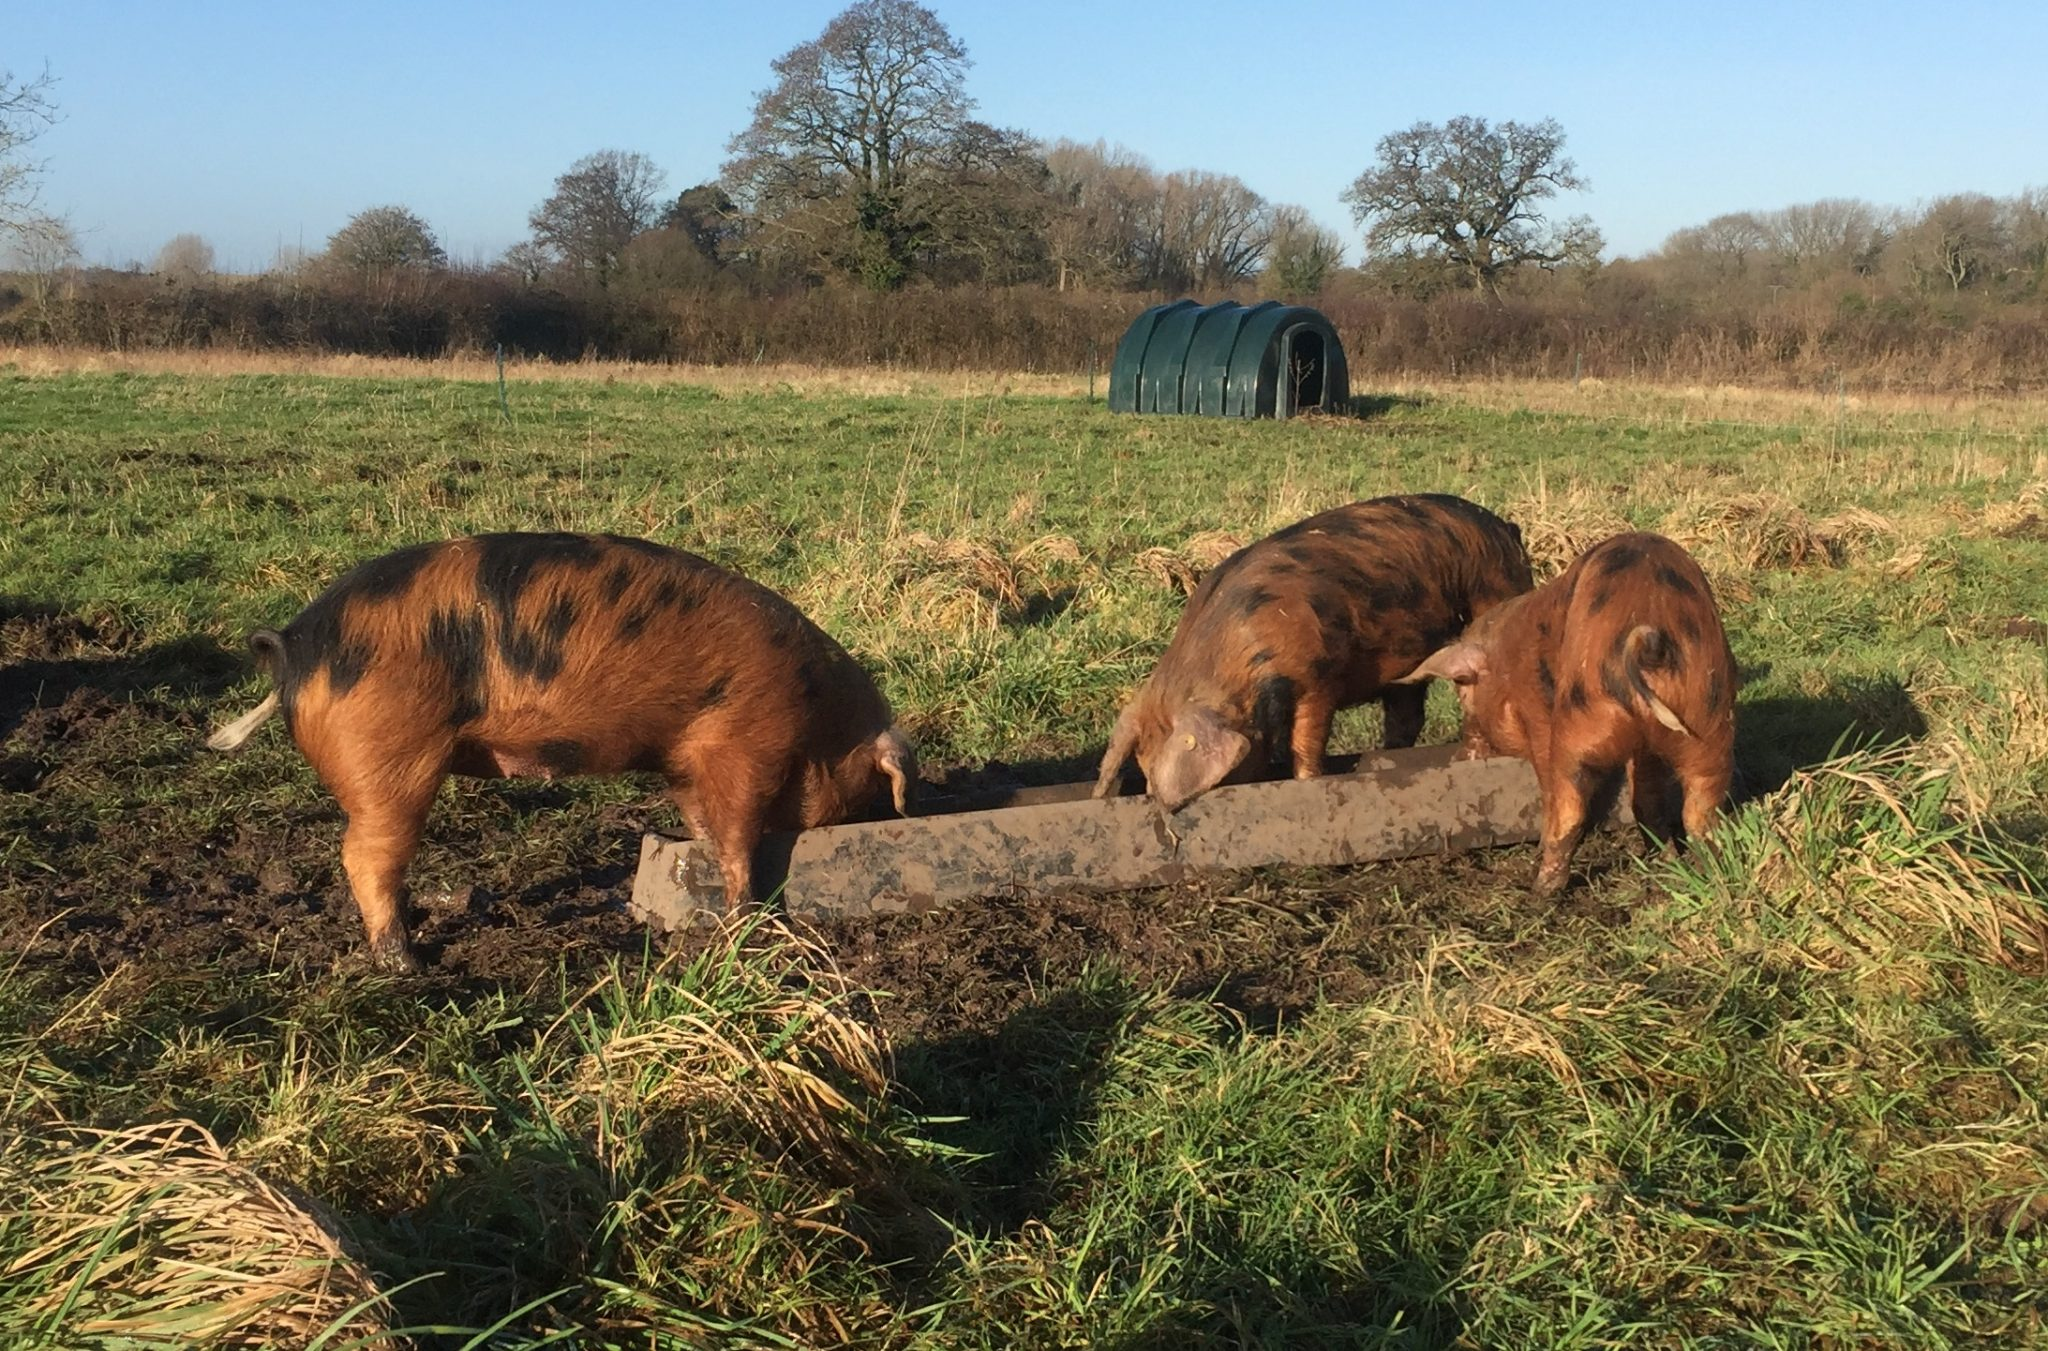 Piglets in the sun